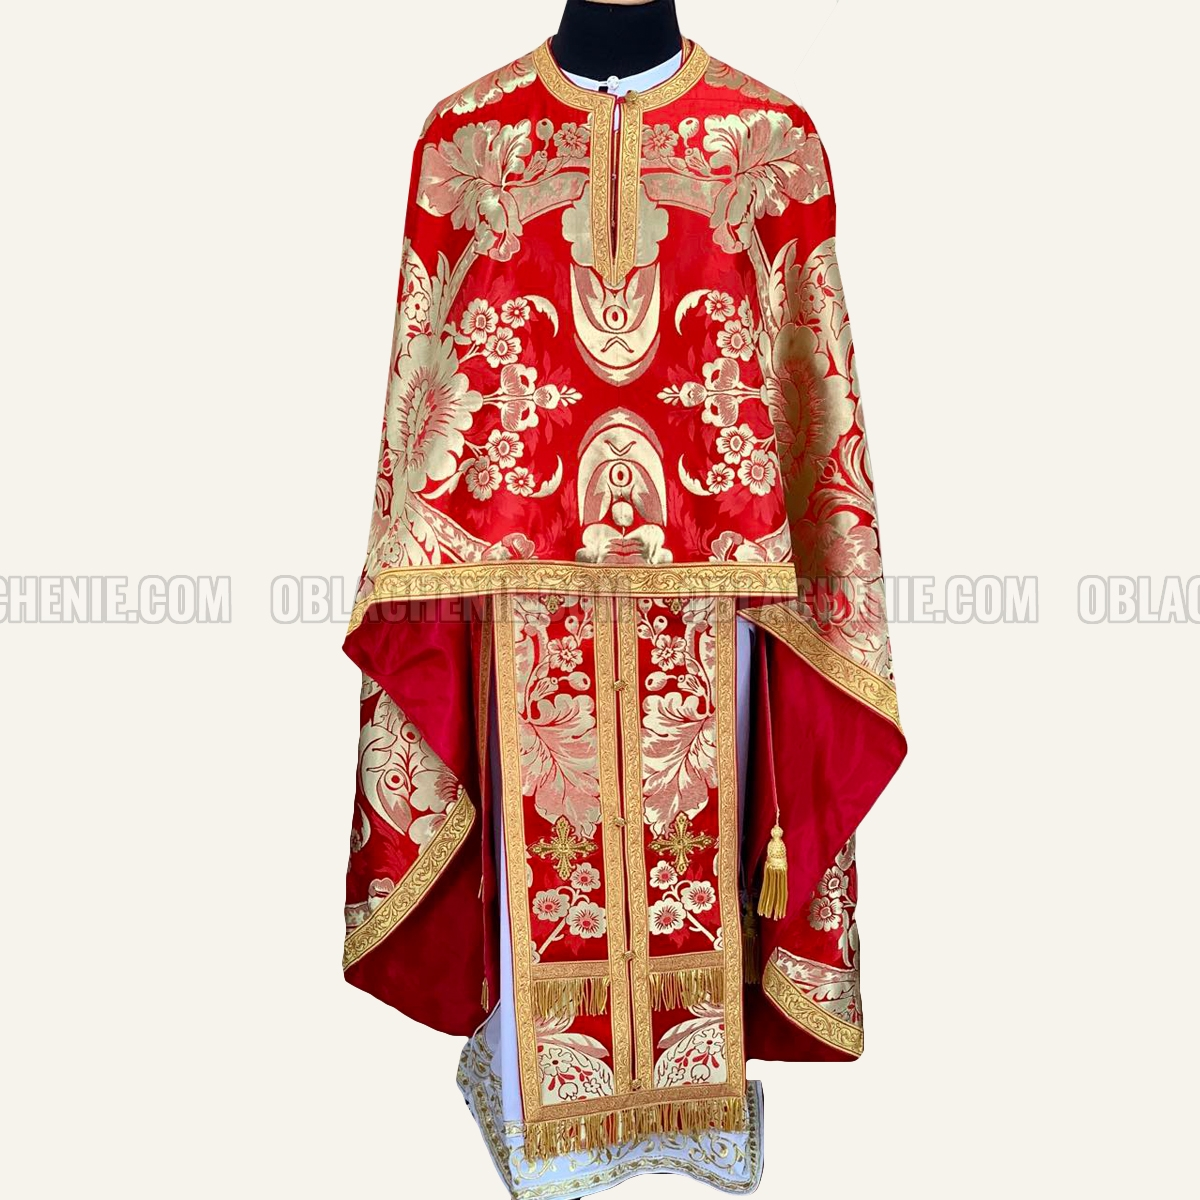 PRIEST'S VESTMENTS 10982